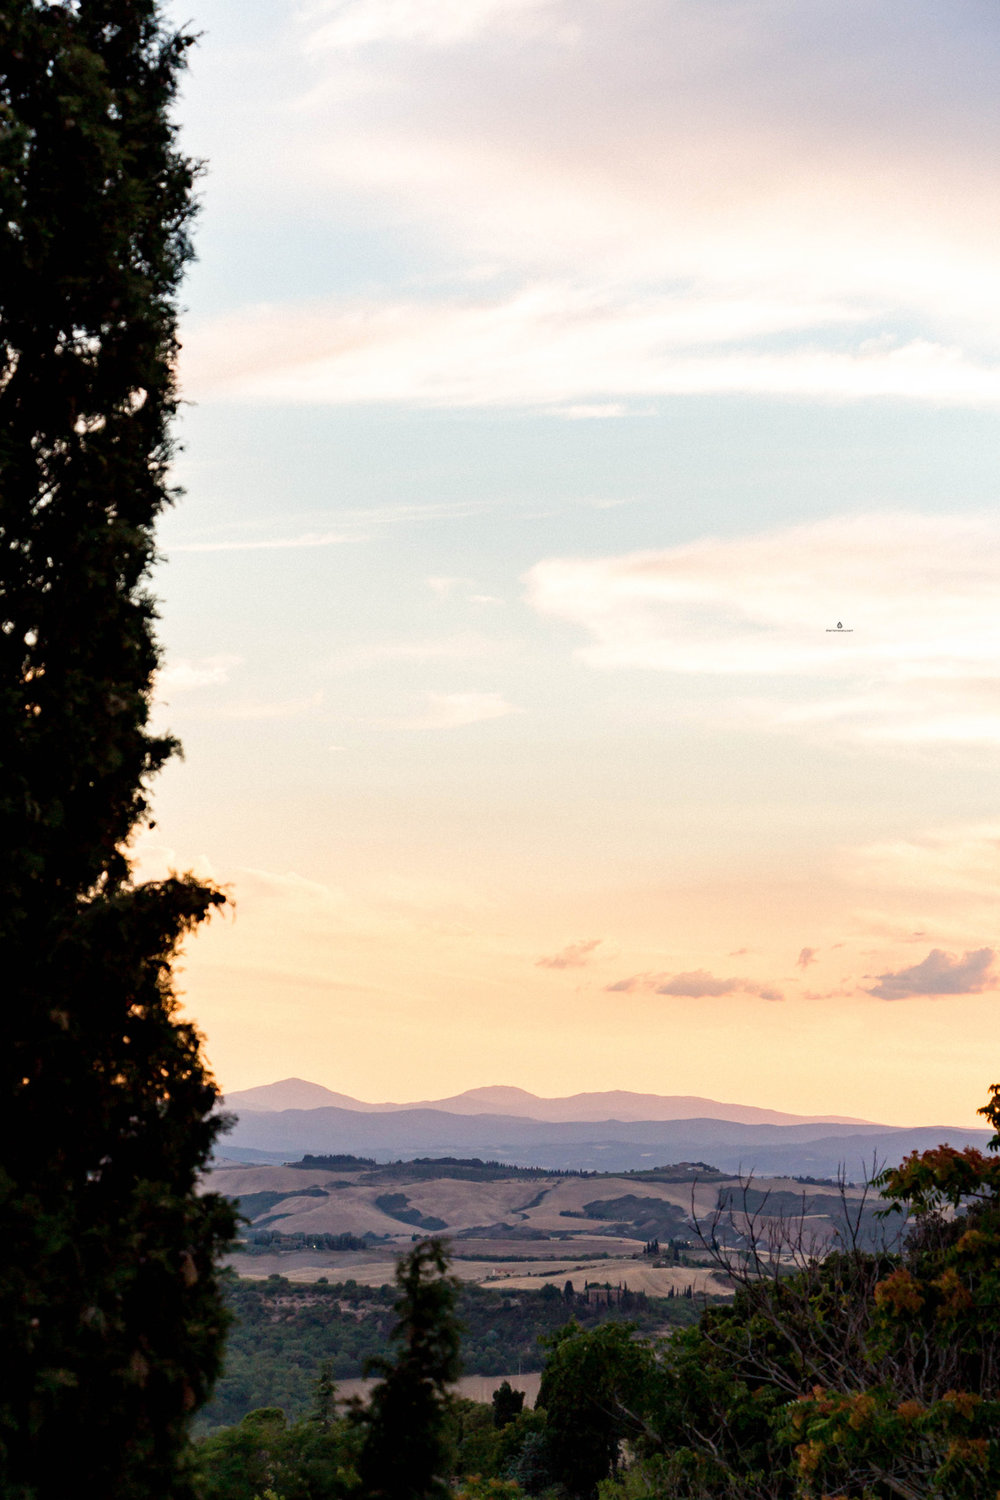 Val d'Orcia viewed from Pienza at sunset